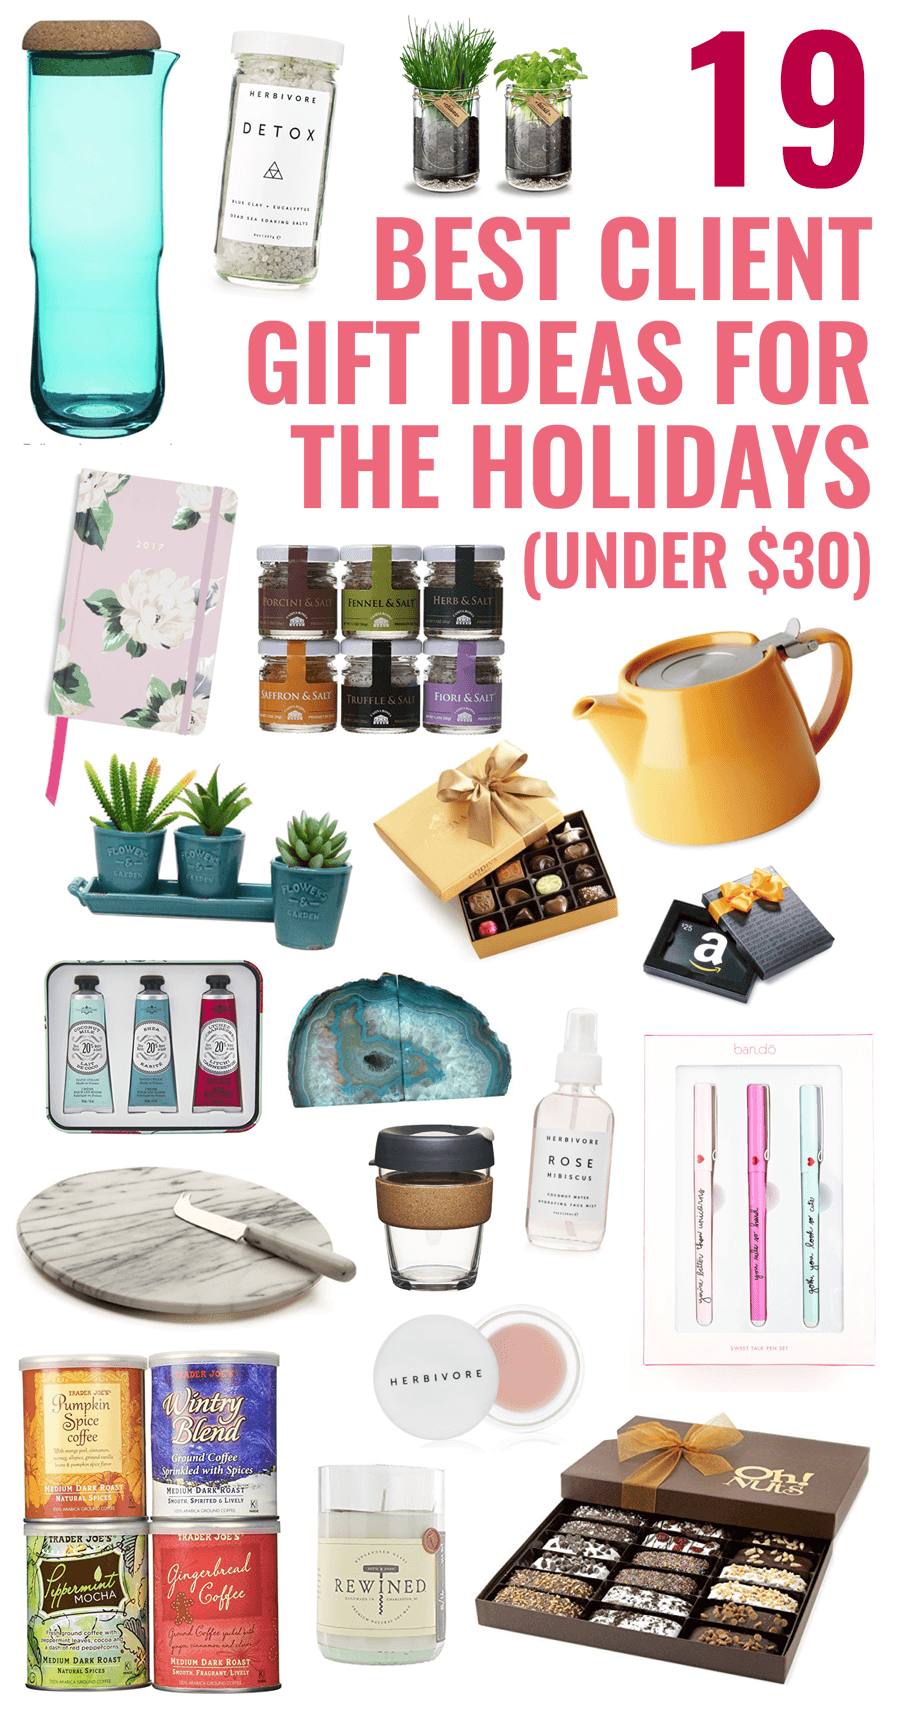 19 Best Client Gift Ideas for the Holidays (under $30 ...